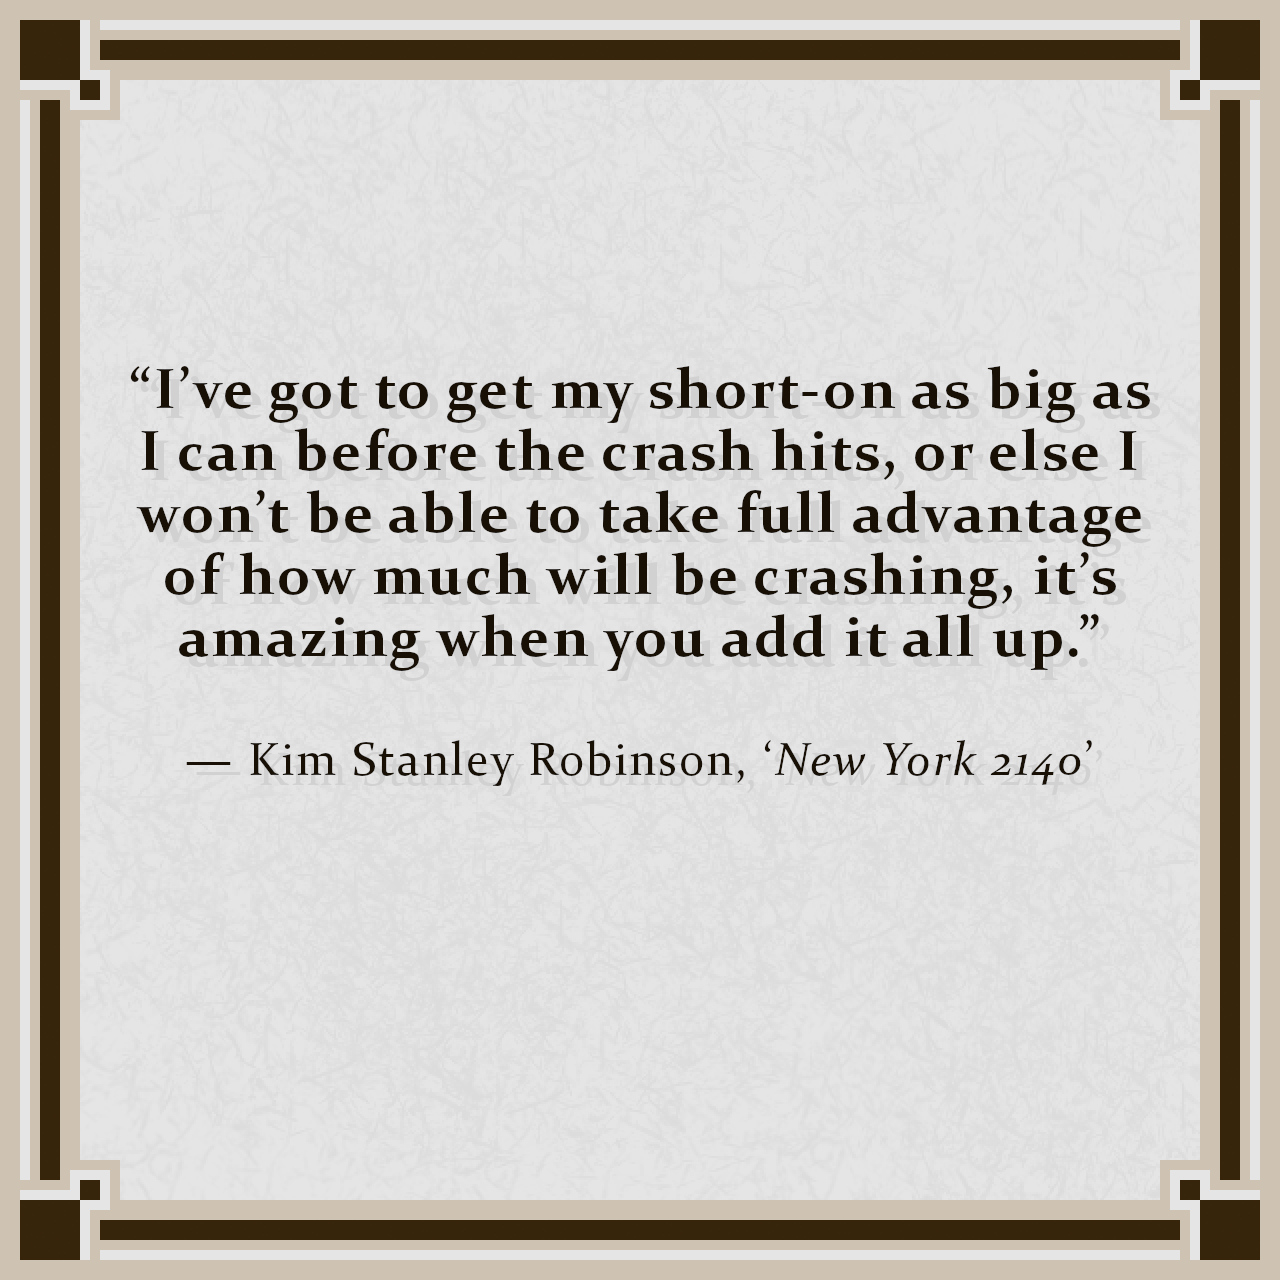 """""""I've got to get my short-on as big as I can before the crash hits, or else I won't be able to take full advantage of how much will be crashing, it's amazing when you add it all up."""" — Kim Stanley Robinson, 'New York 2140'"""